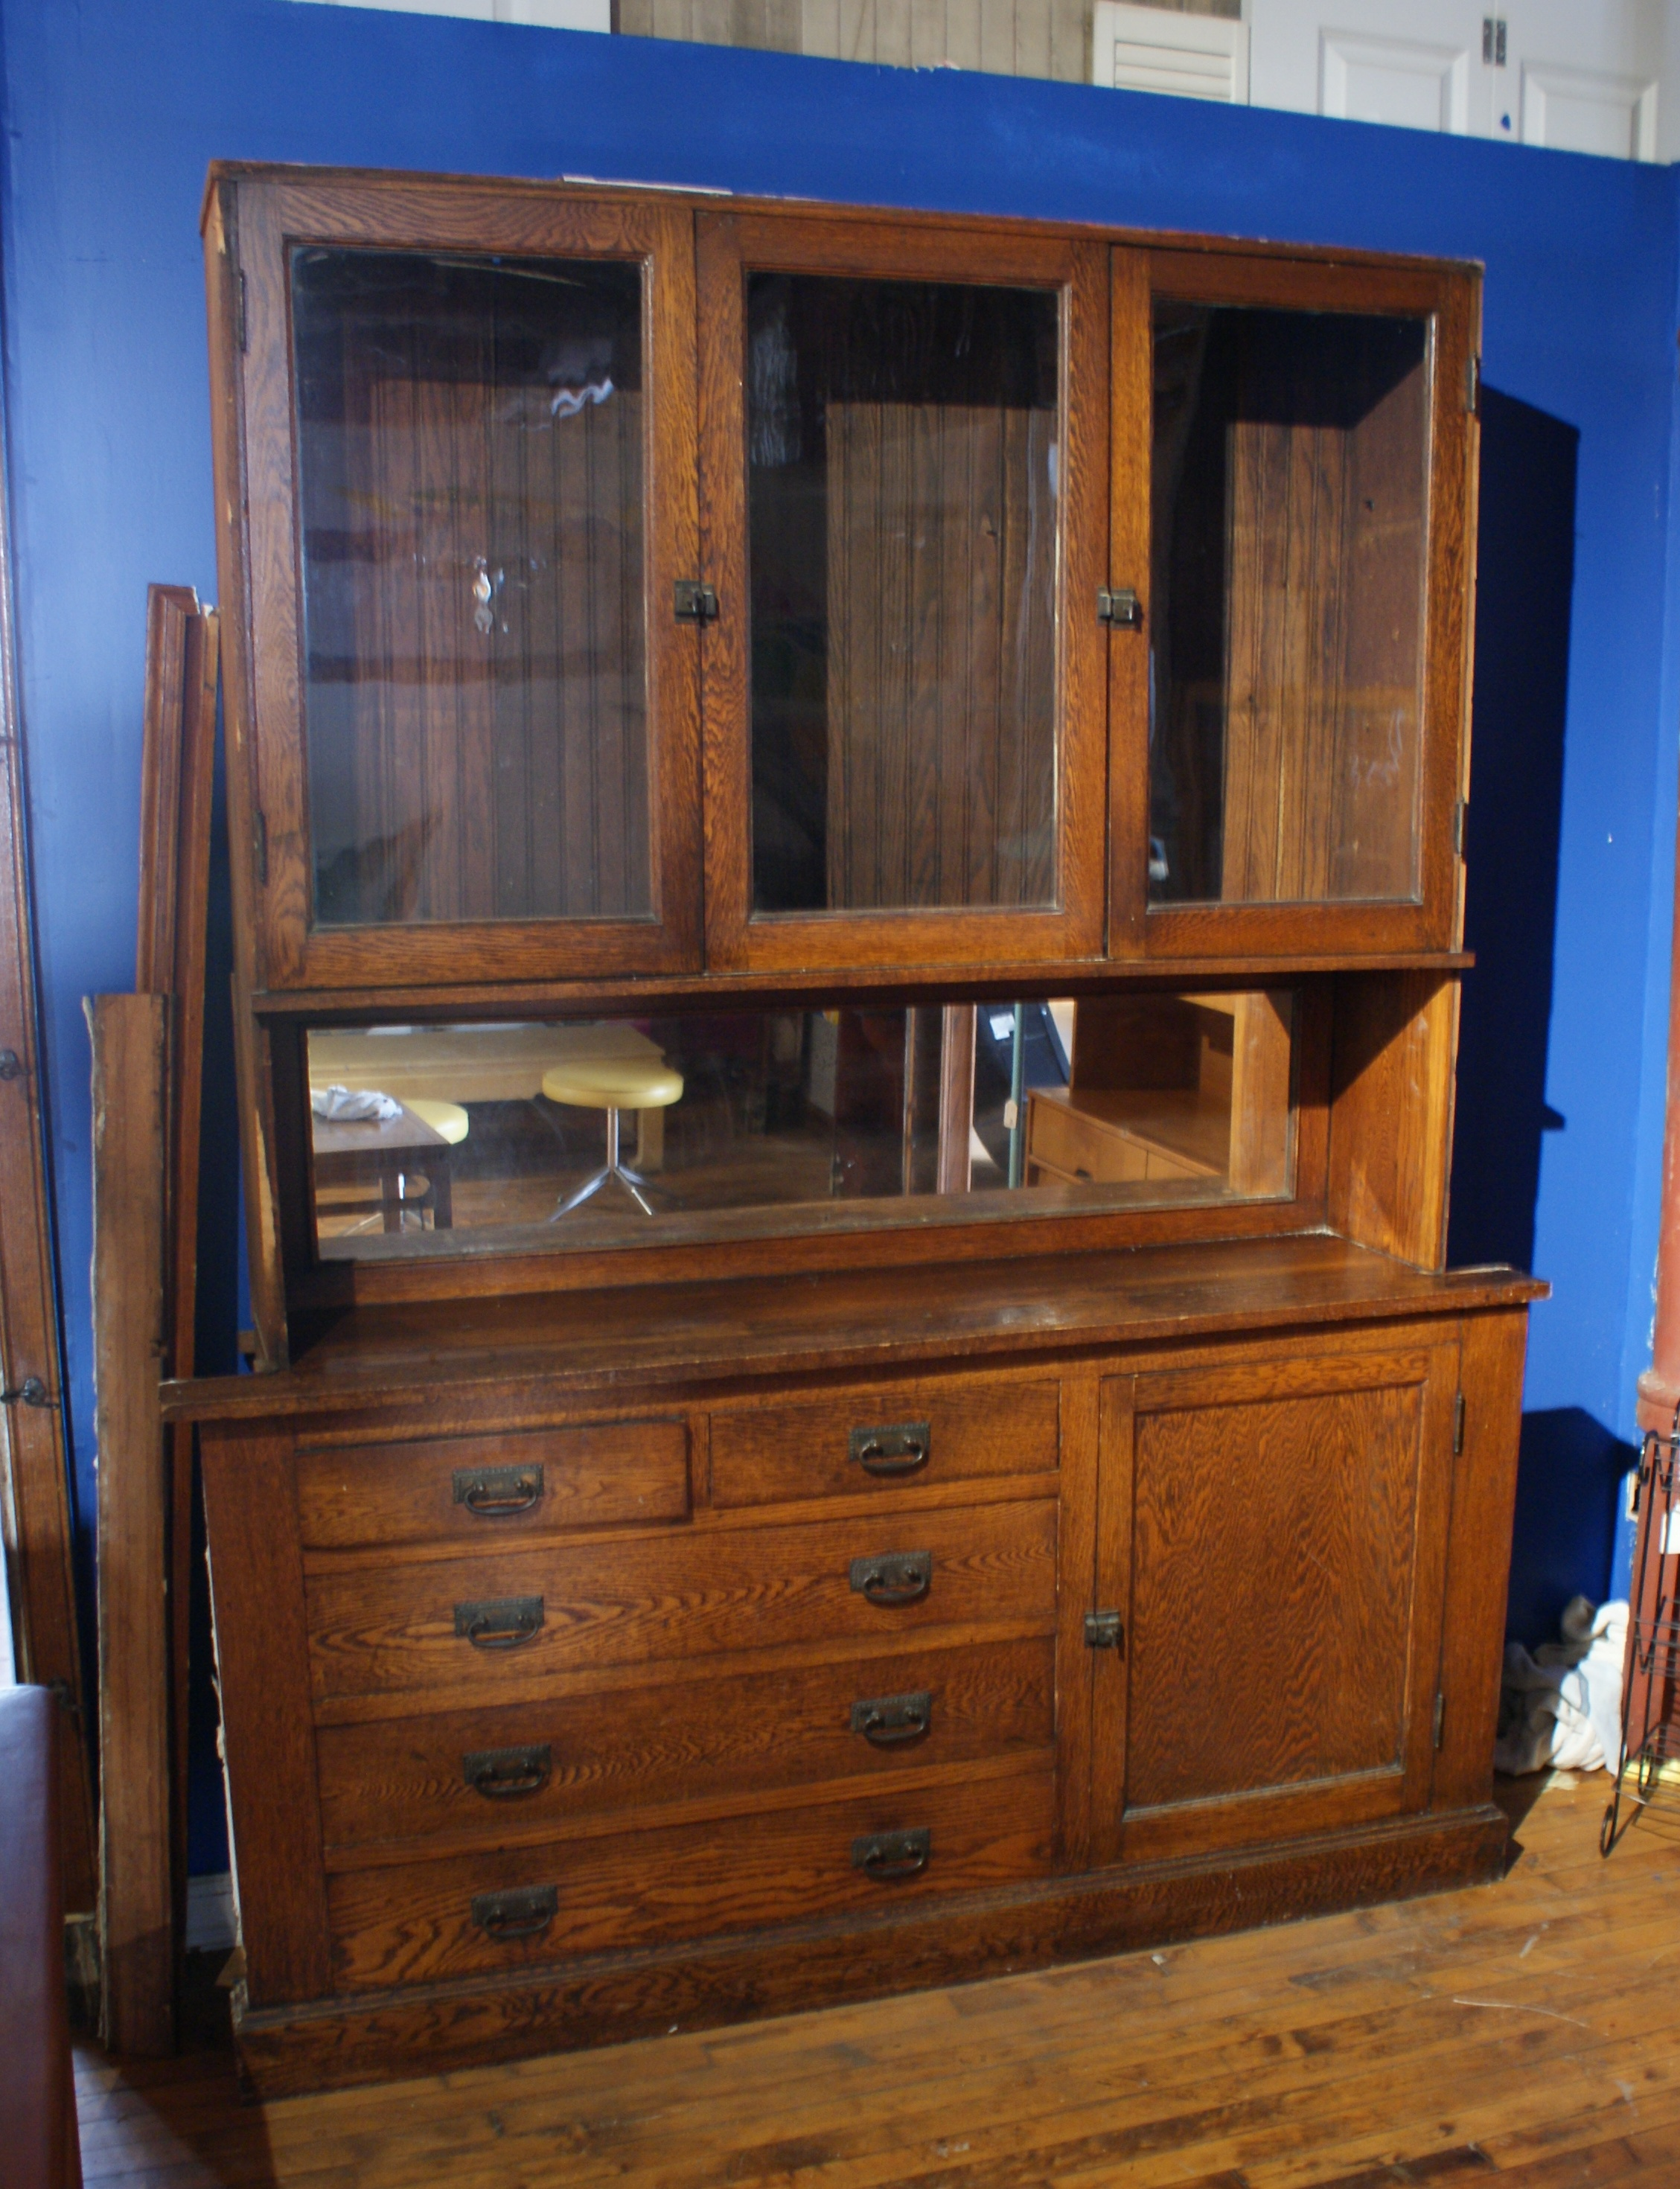 Built In Hutch From Sears Home Kit Salvage One